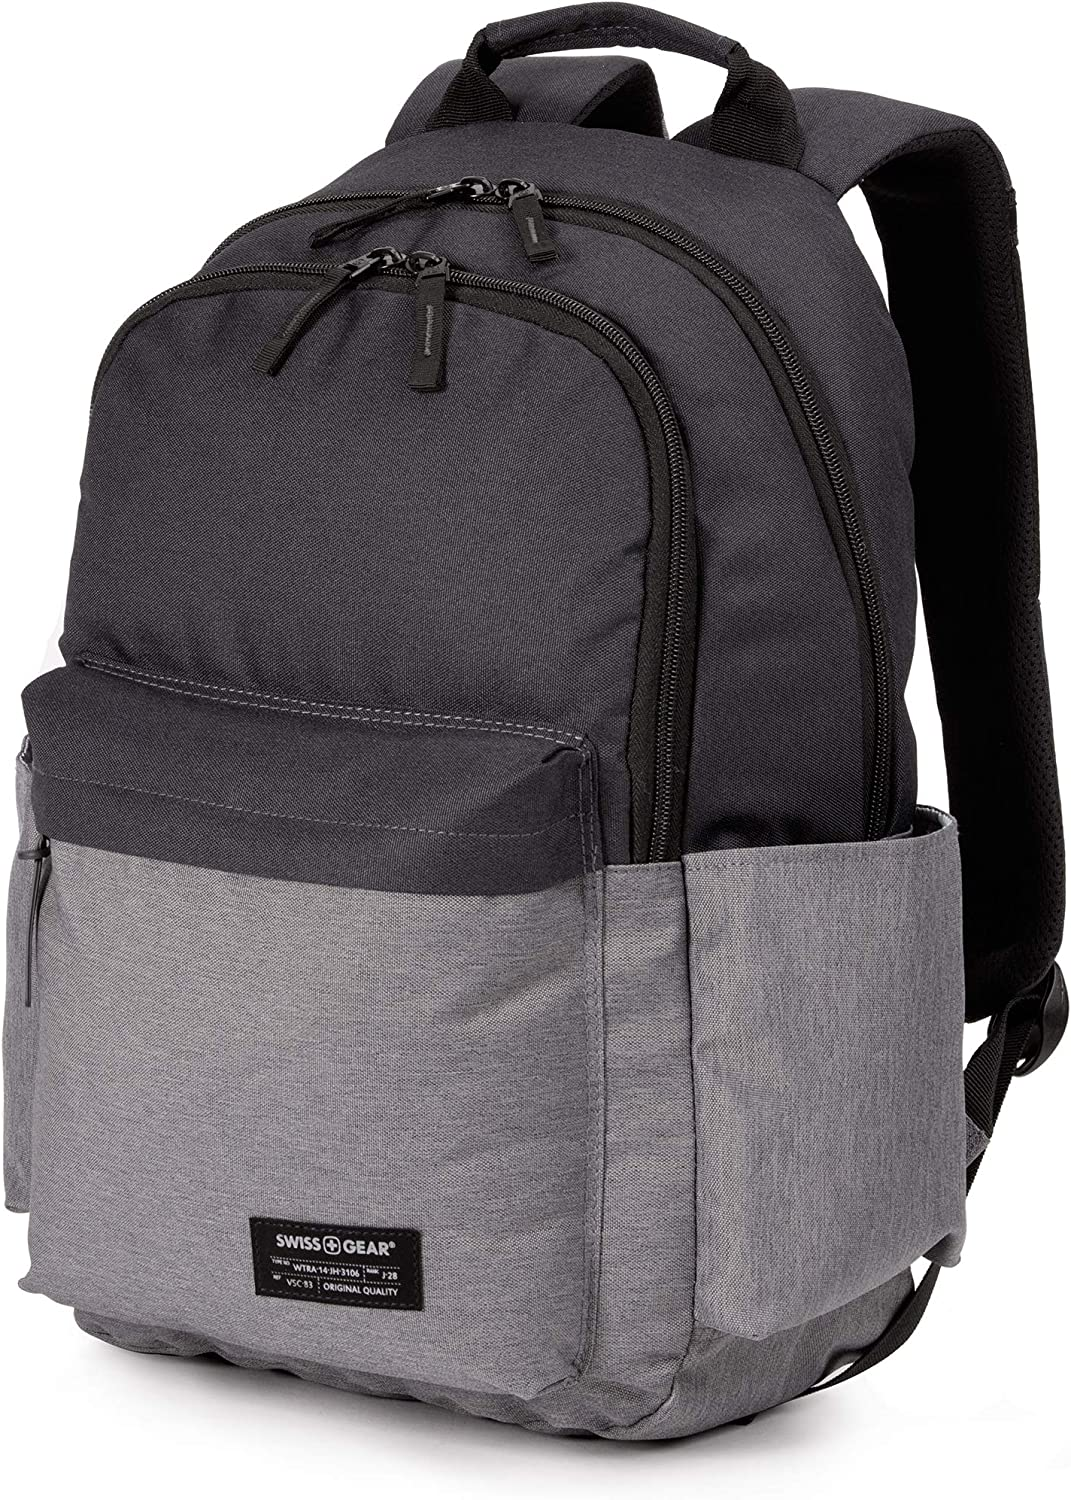 SWISSGEAR 2789 Laptop Backpack for Men and Women, Ideal for Commuting, Work, Travel, College, and School, Fits 13 Inch Laptop Notebook - Grey/Black